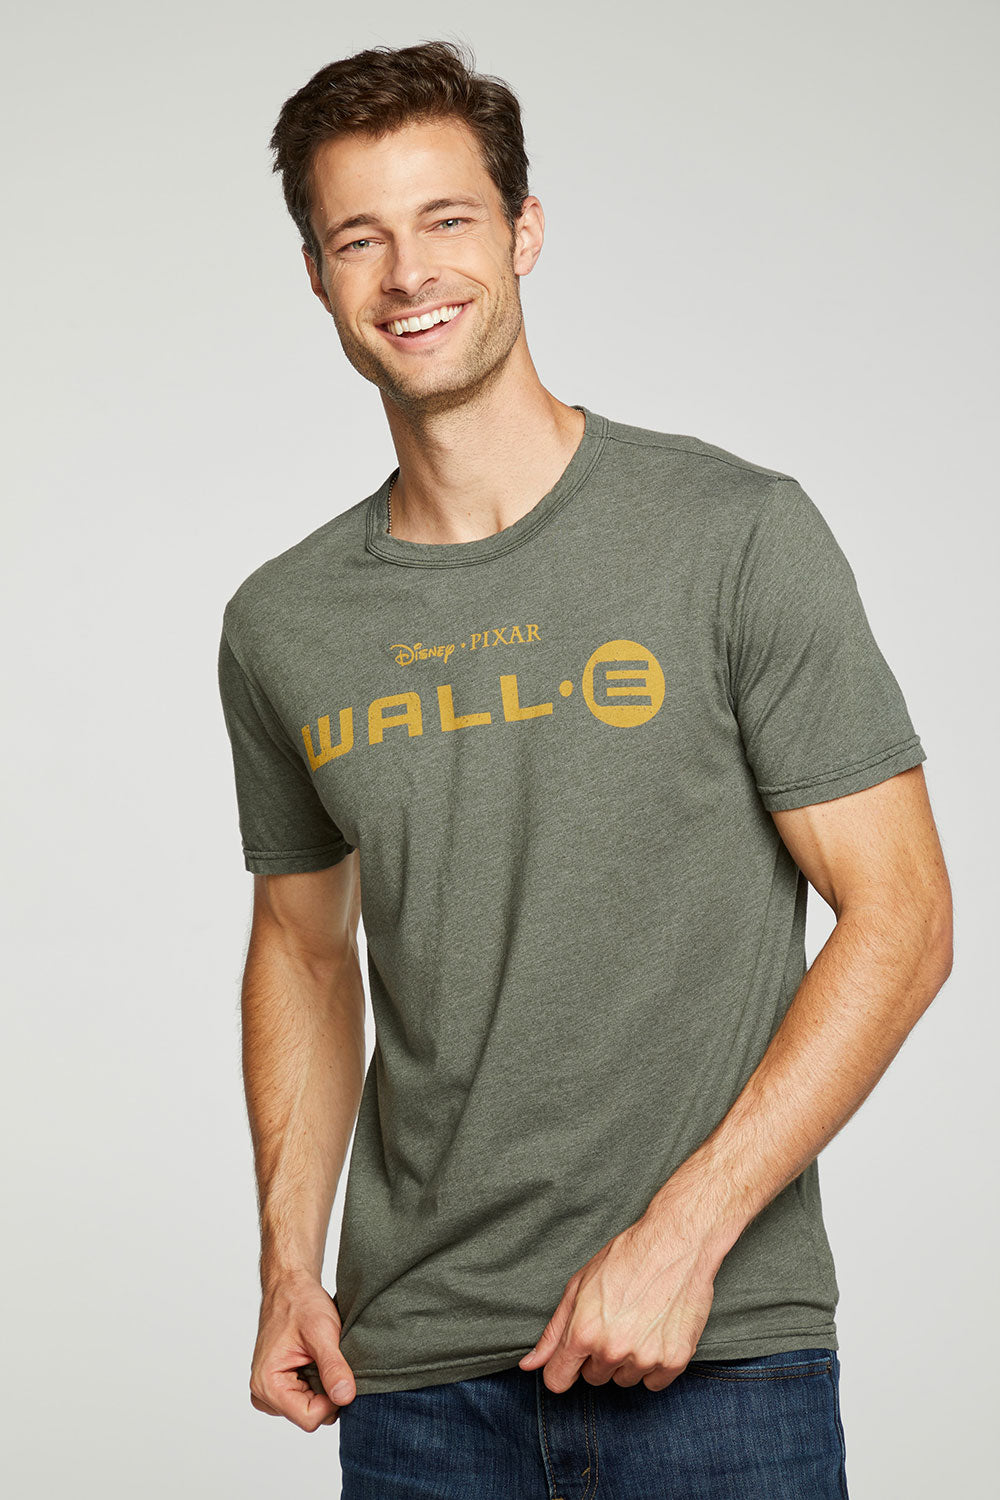 Wall-e - Classic Logo MENS chaserbrand4.myshopify.com